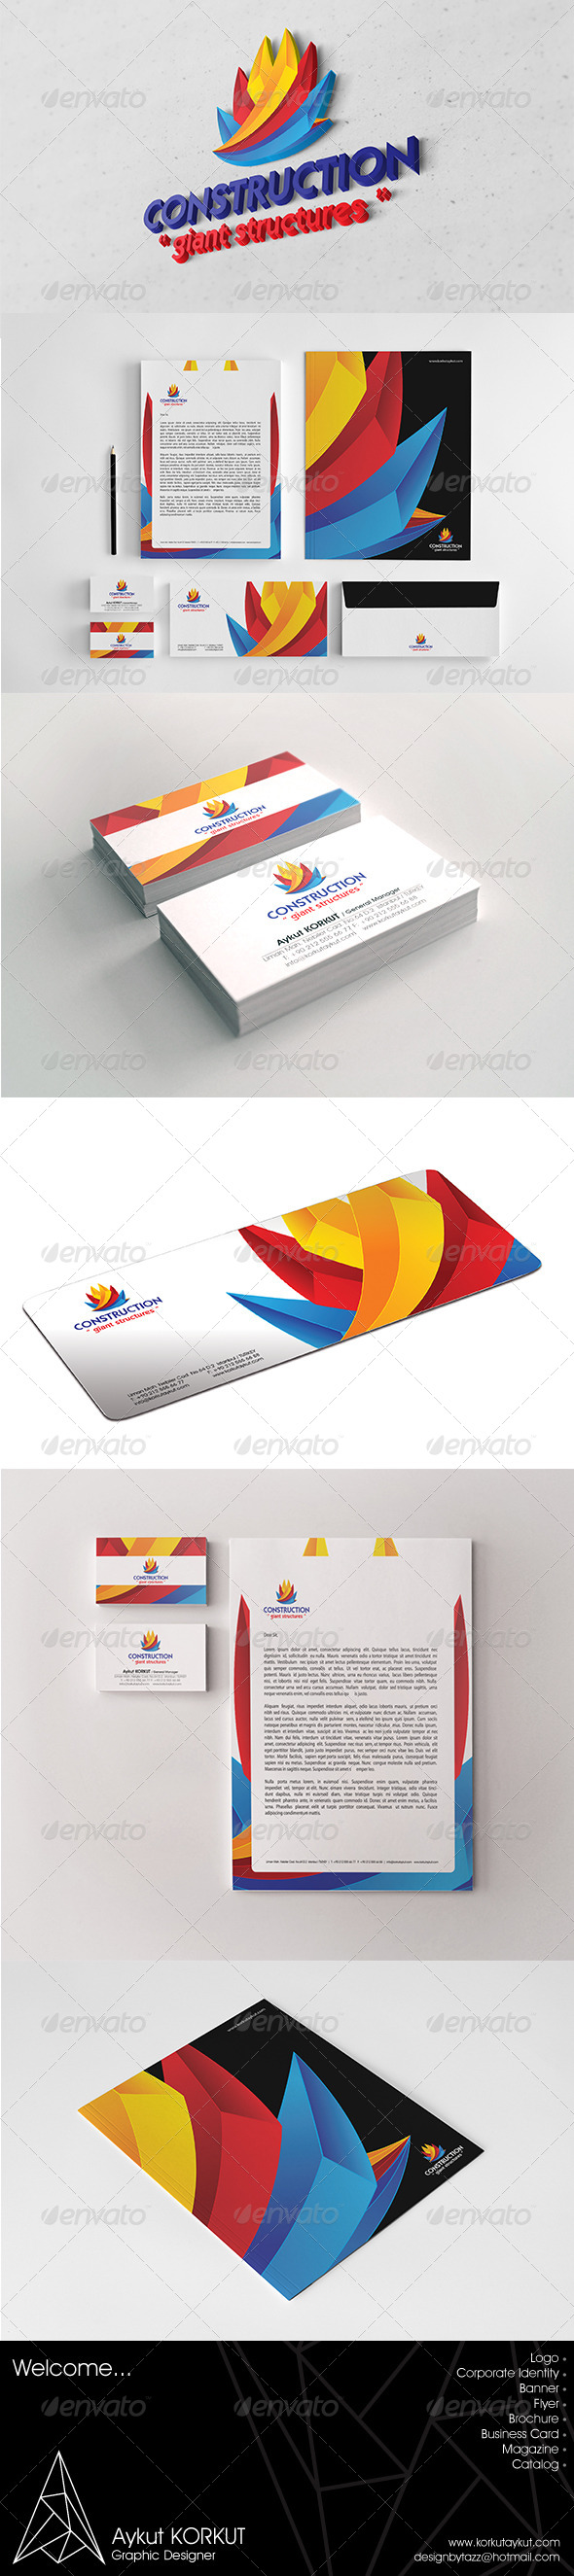 GraphicRiver Construction Corporate Identity Package 5937091